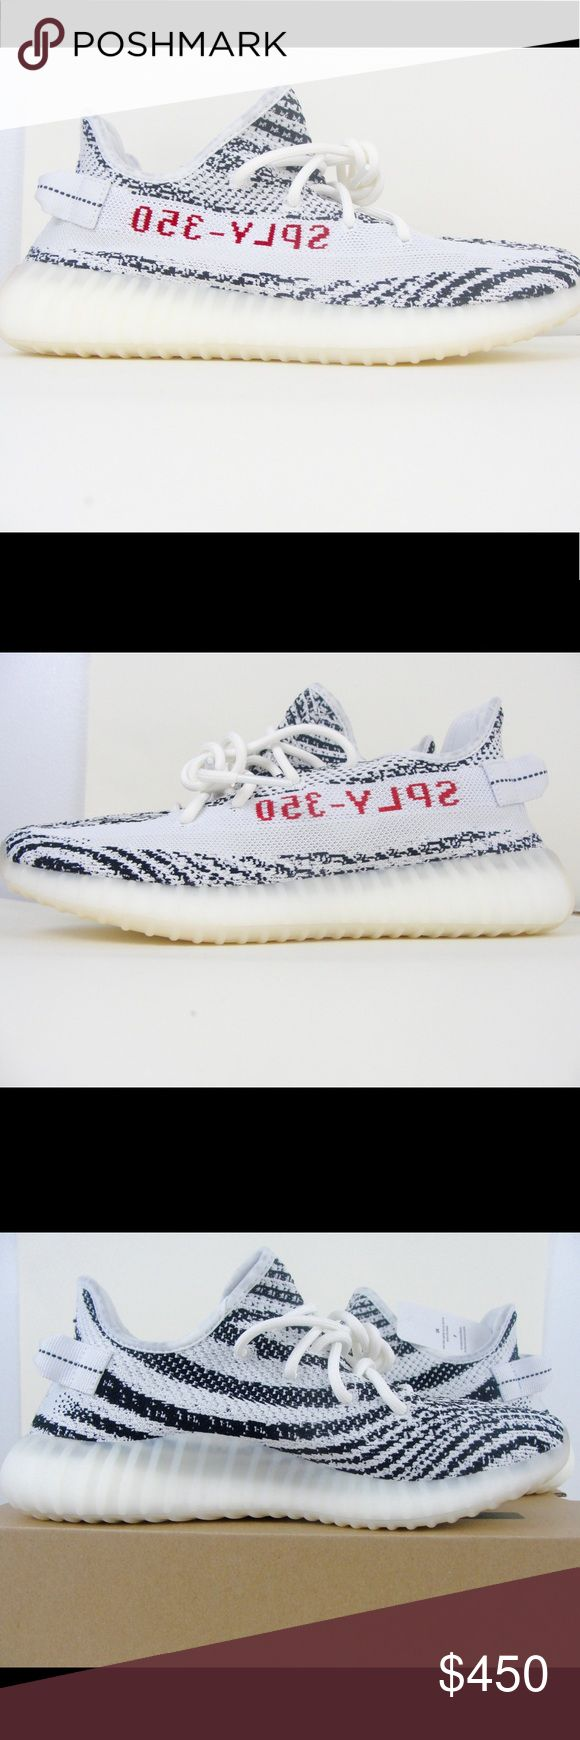 Adidas Yeezy Boost 350 V2 Zebra size 9 Brand new in box purchased directly from footlocker, size 9. Need to sell asap. Will ship for free, PayPal, venmo, accepted forms of payment. Make an offer, thanks Yeezy Shoes Sneakers